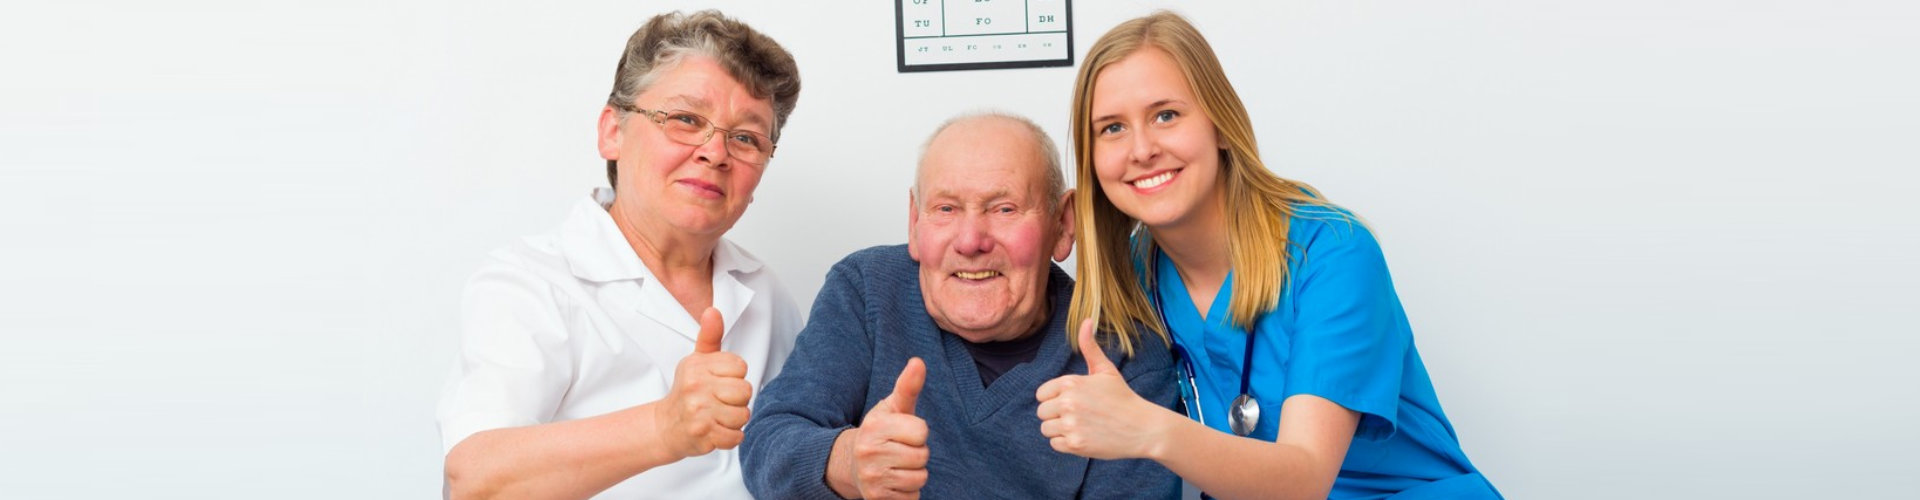 nurse and senior couple doing a thumbs up